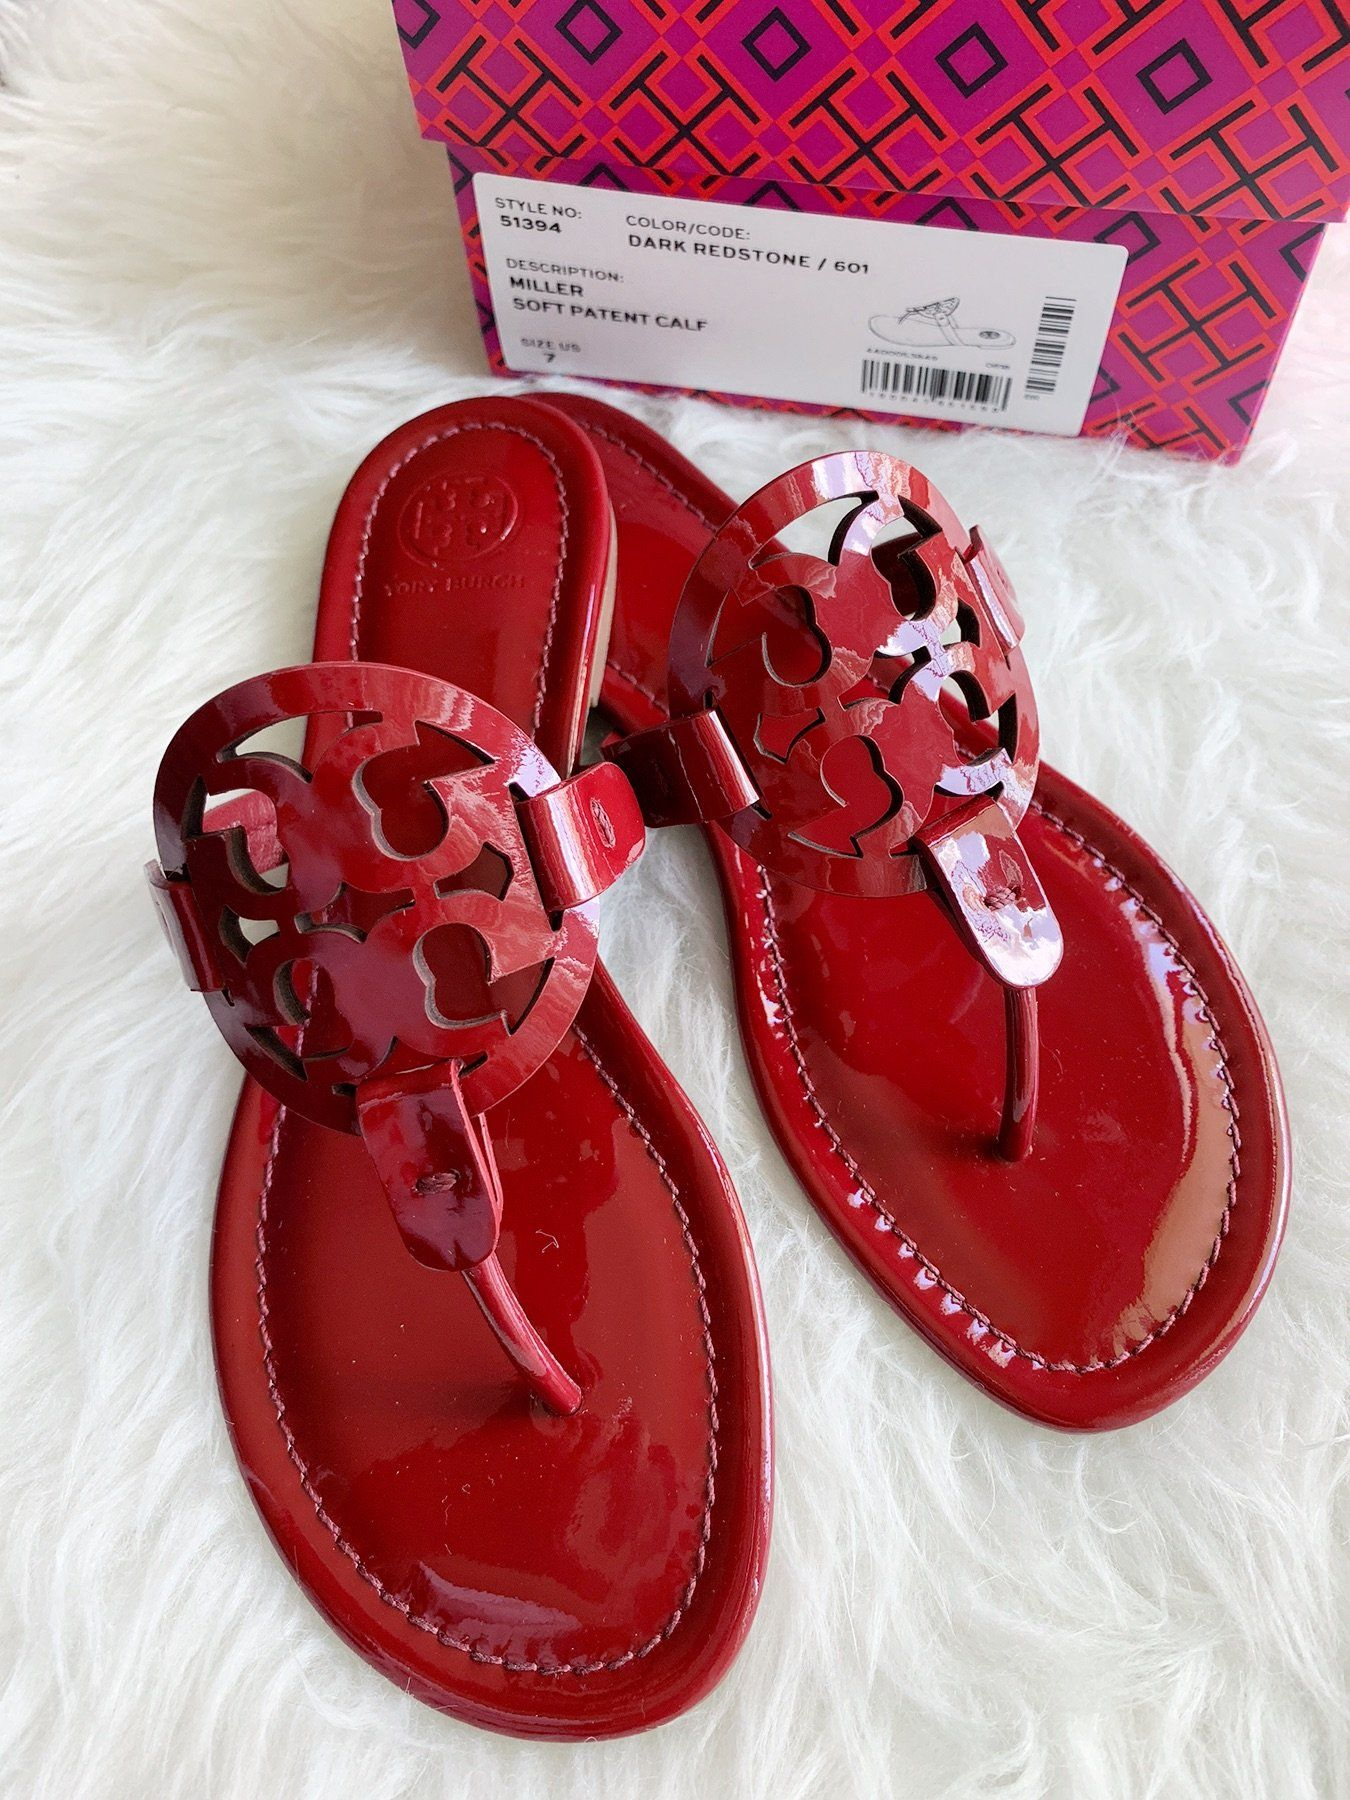 3828df4ea8c Tory Burch Miller Sandals Flip Flop Dark Red Stone 7  ebayseller   tradesyseller  rated  ebaycommunity  toprated  ebayfashion  Handbags   poshpackages ...